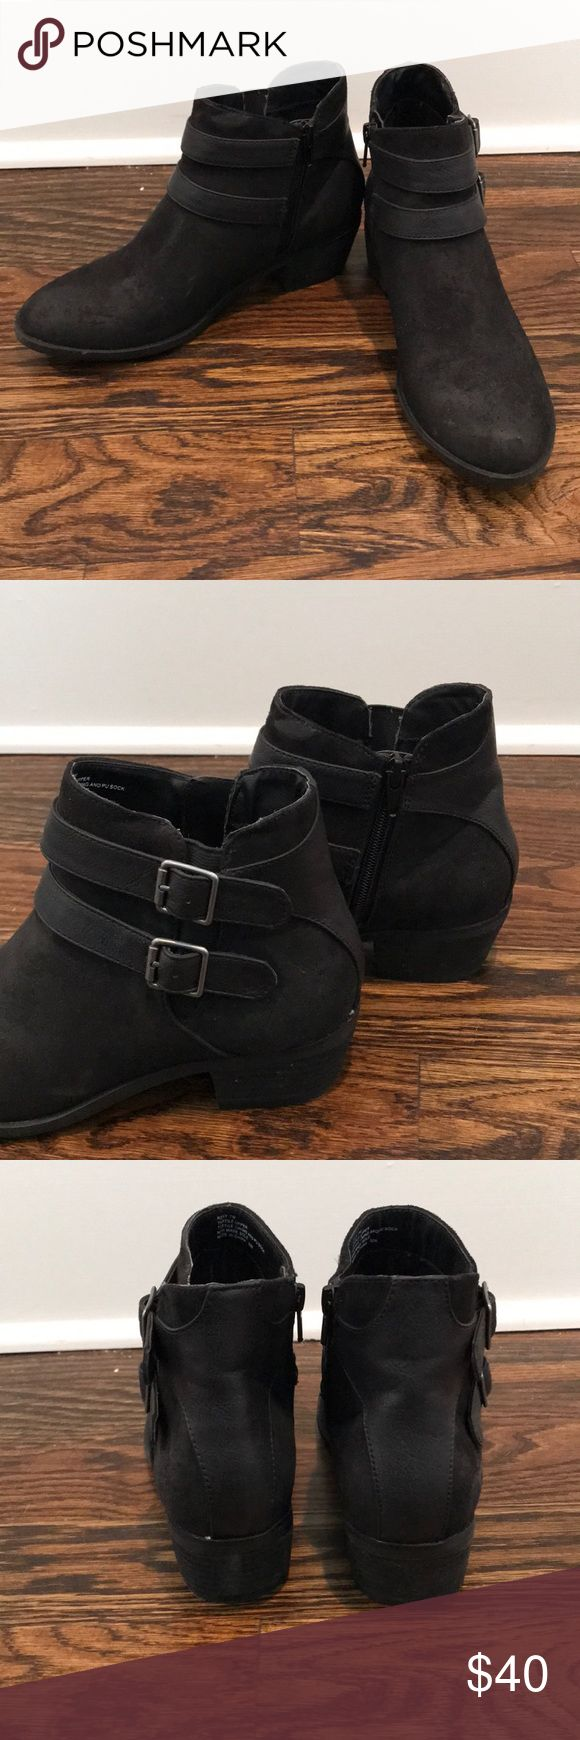 Black Zip Up Booties Only worn once! About 1.5 inch heel. Faux suede material. Madden Girl Shoes Ankle Boots & Booties